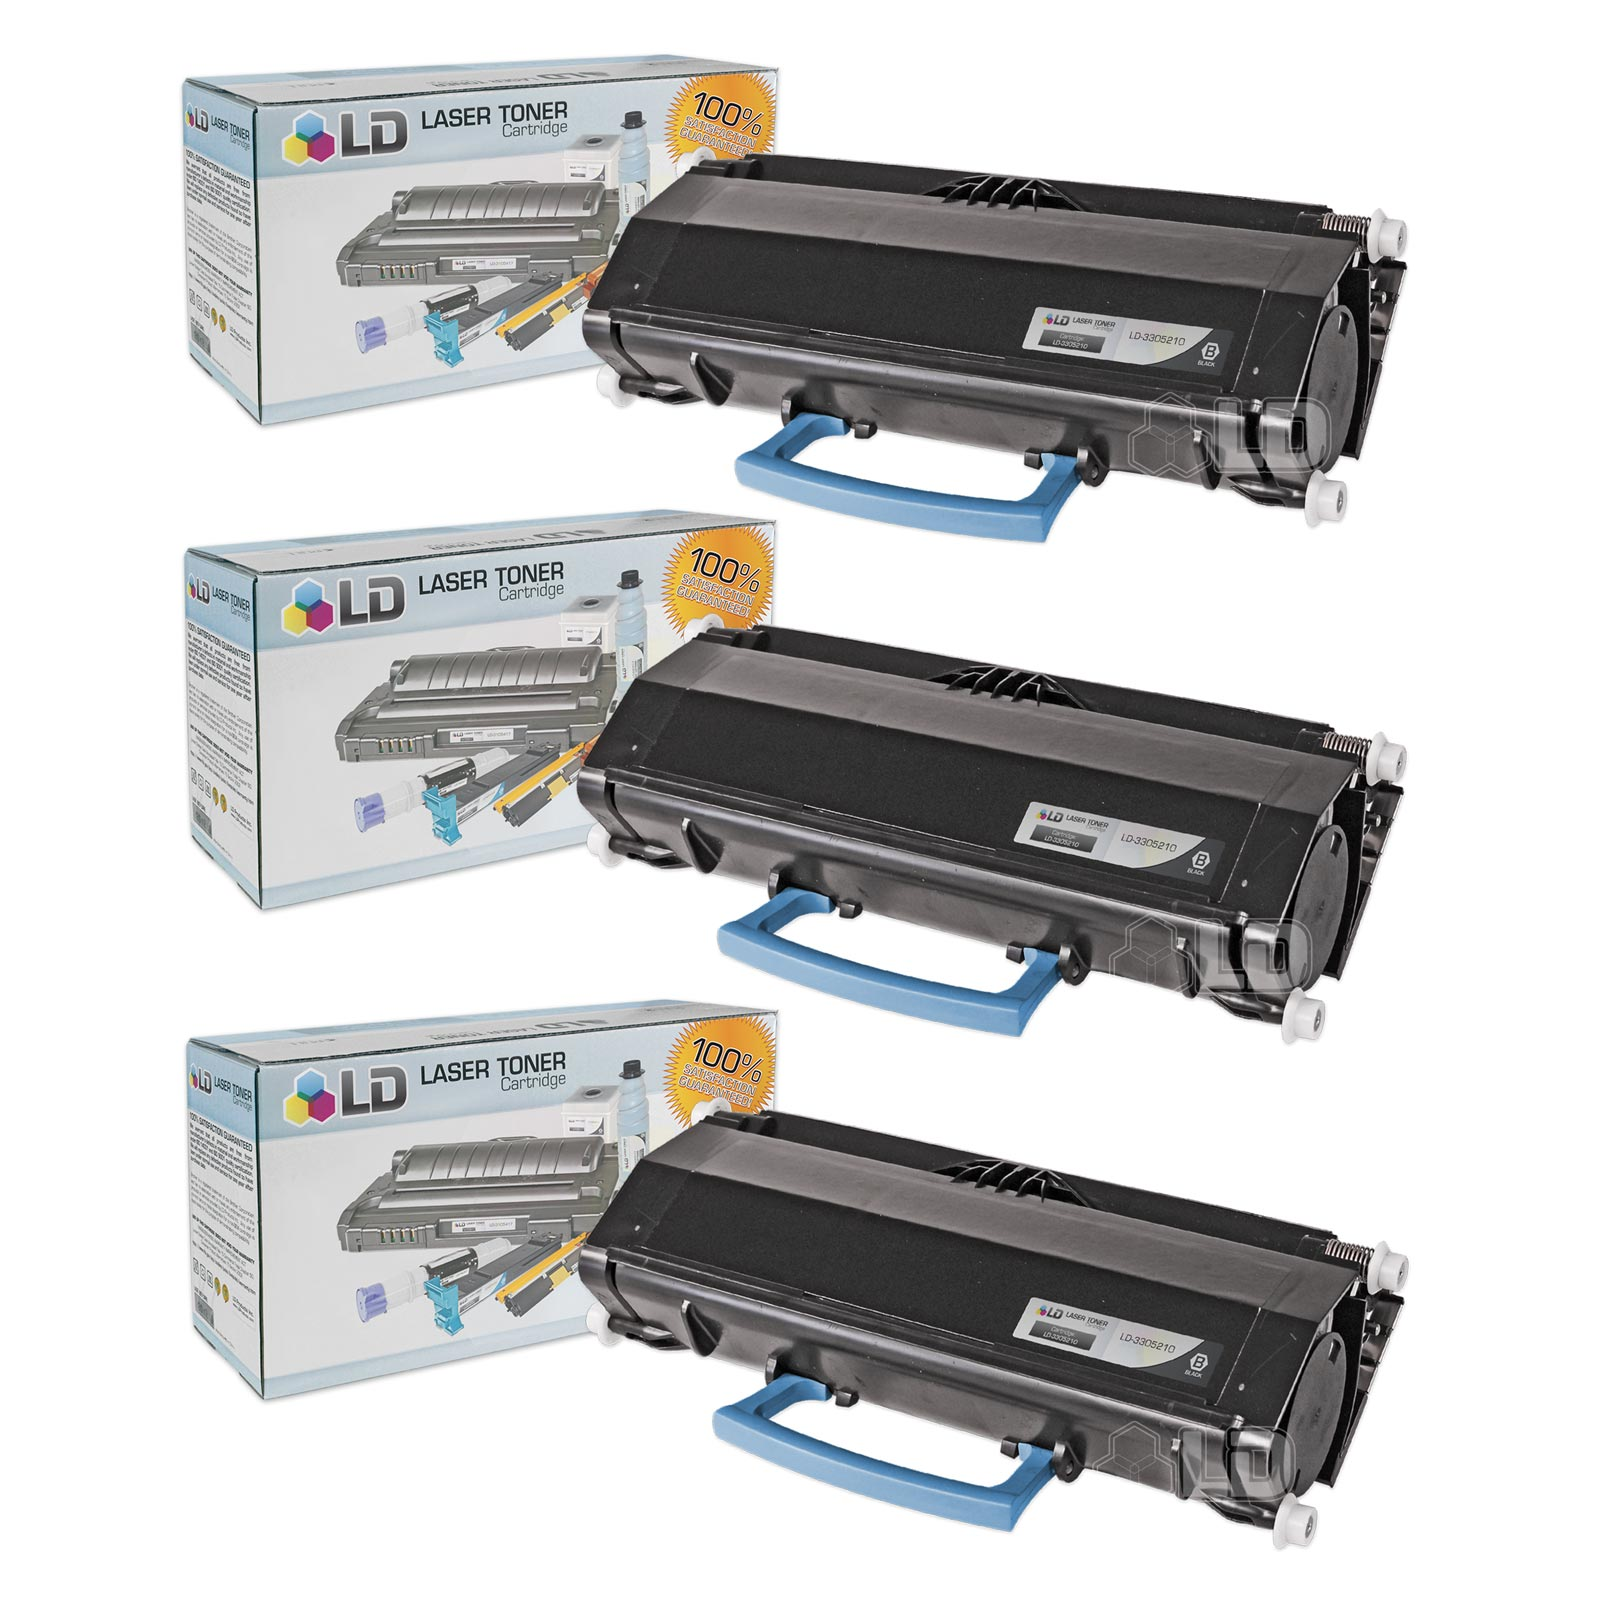 LD Compatible Dell 330-5207 (U903R) High Yield Black Toner Cartridges for your Dell 3330dn Printers